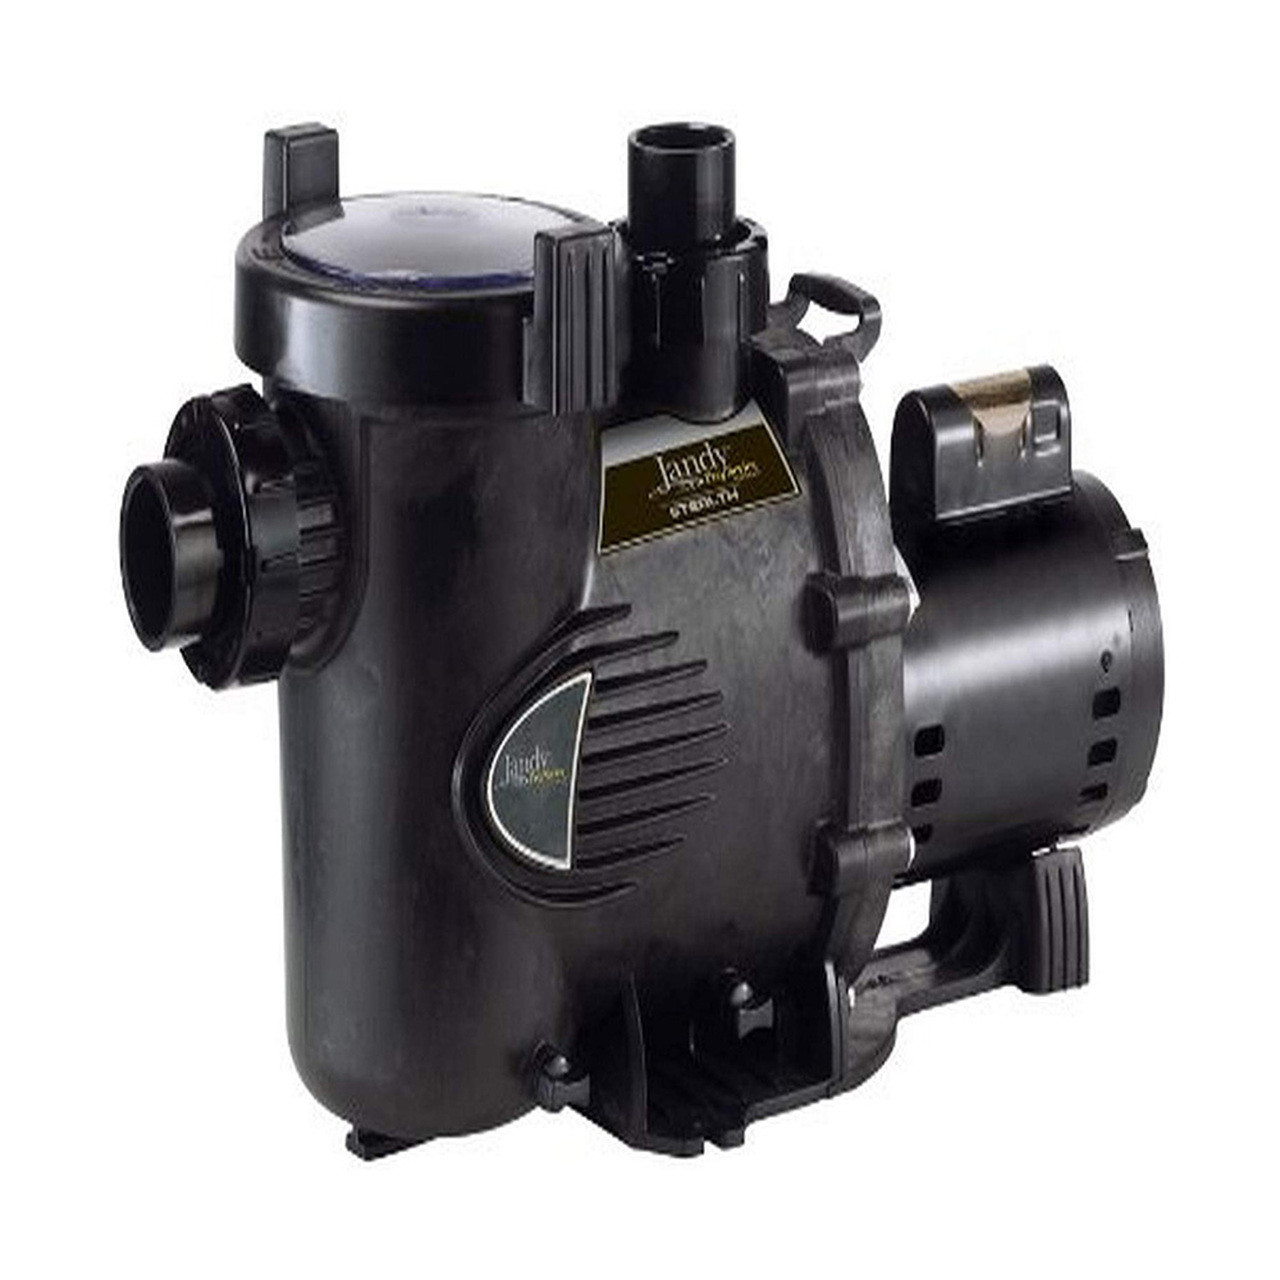 Jandy Pro Series Stealth 3-Phase Full-Rated High Head Pump; 1 HP, 208-230/460 VAC